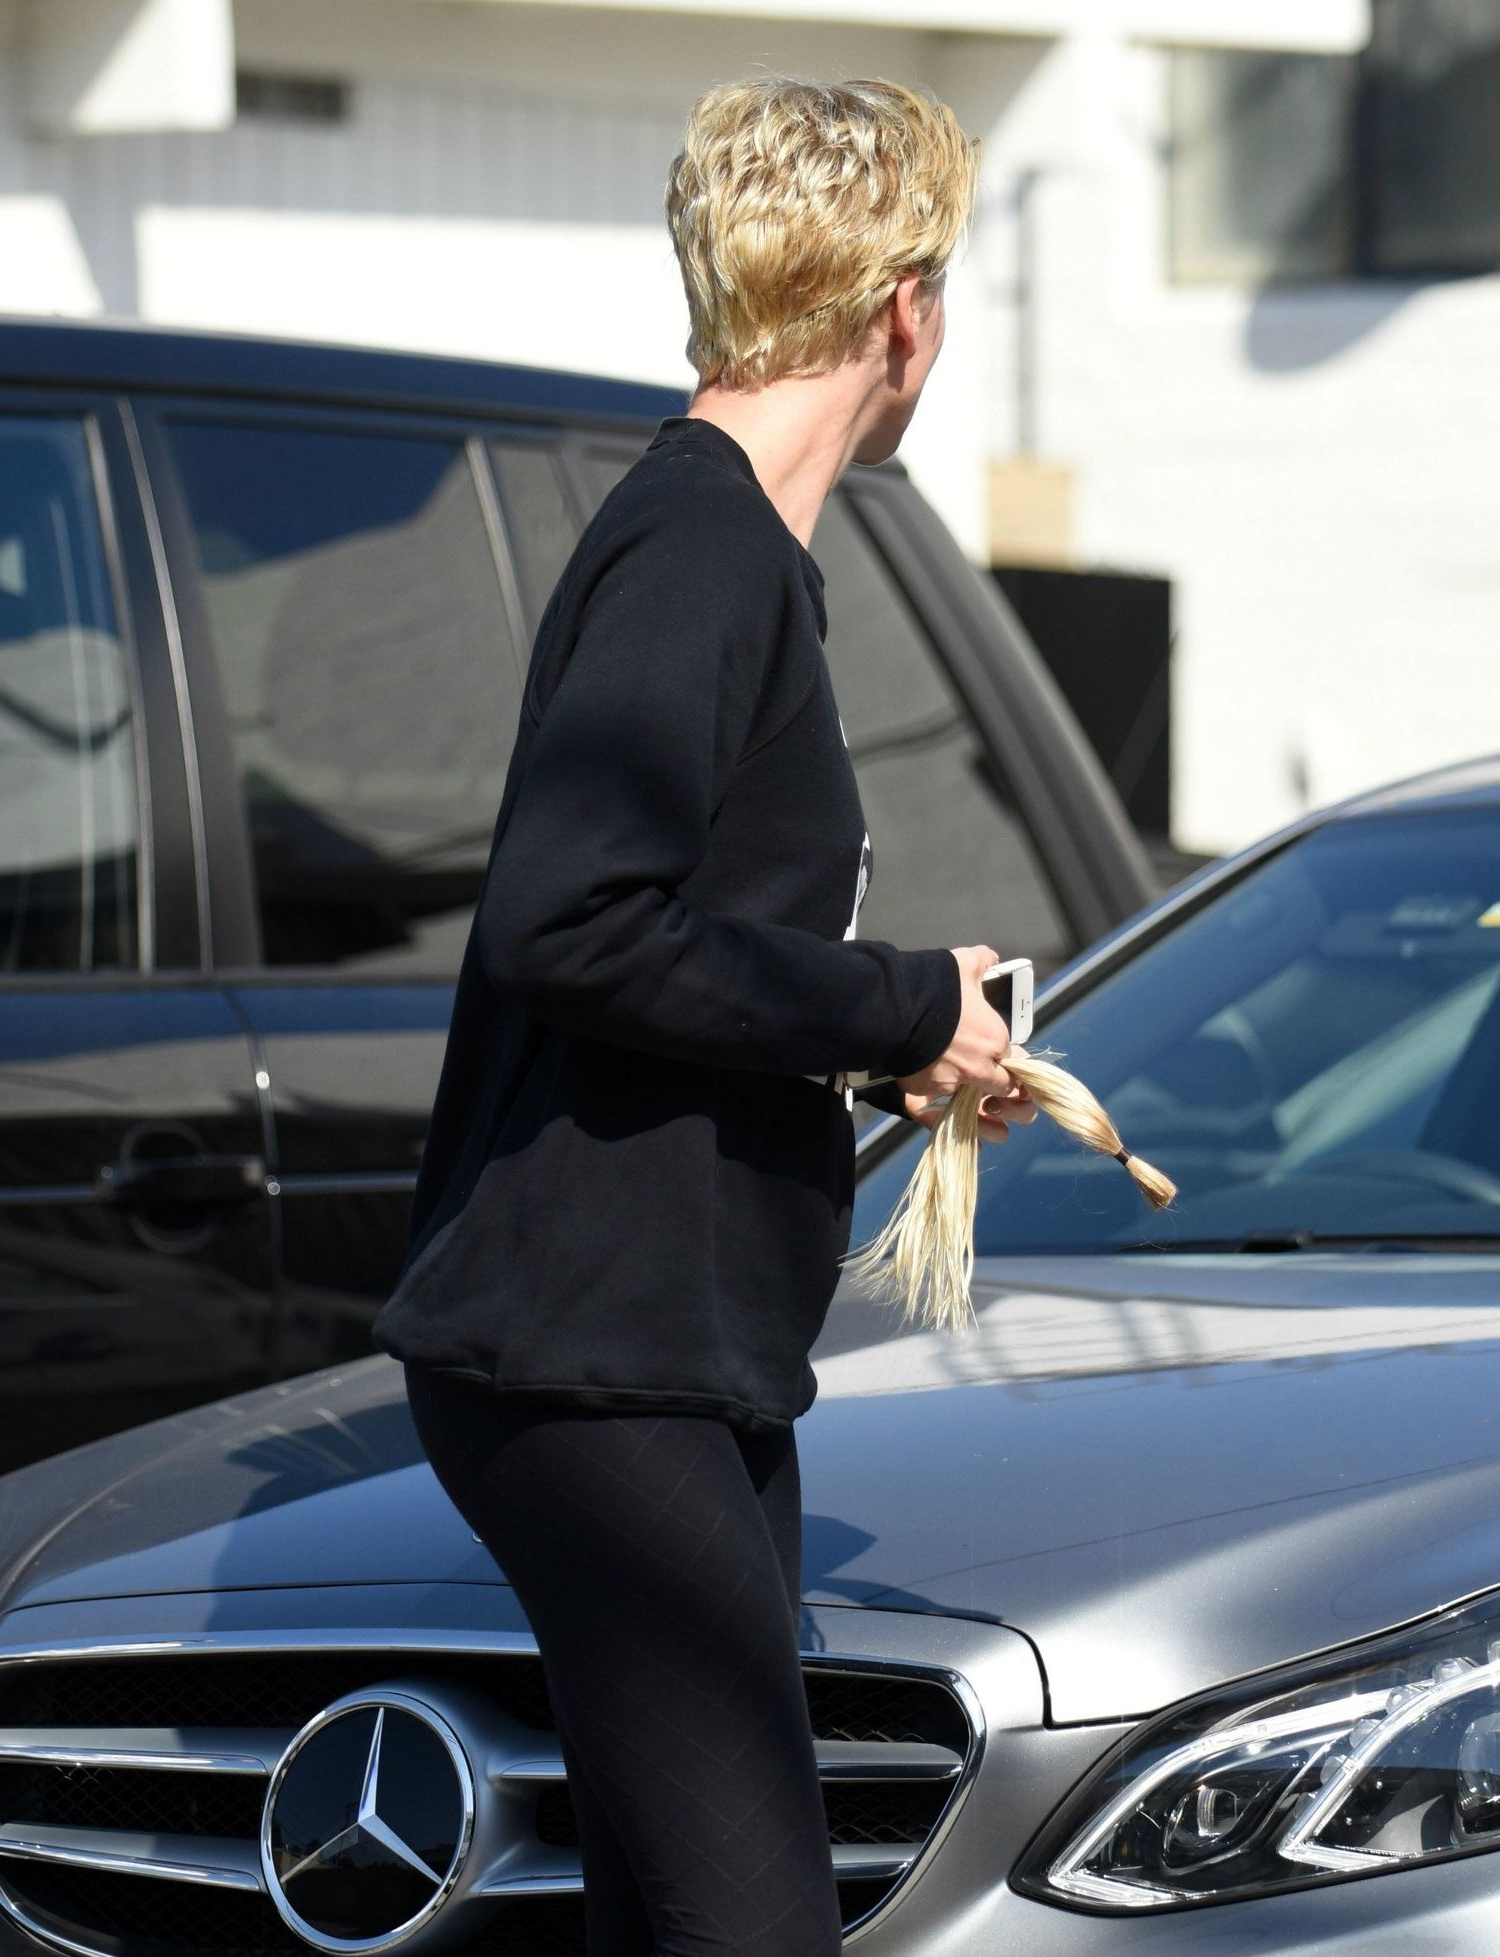 Charlize Theron Just Chopped Her Hair Super Short   Glamour Throughout Charlize Theron Short Haircuts (View 23 of 25)